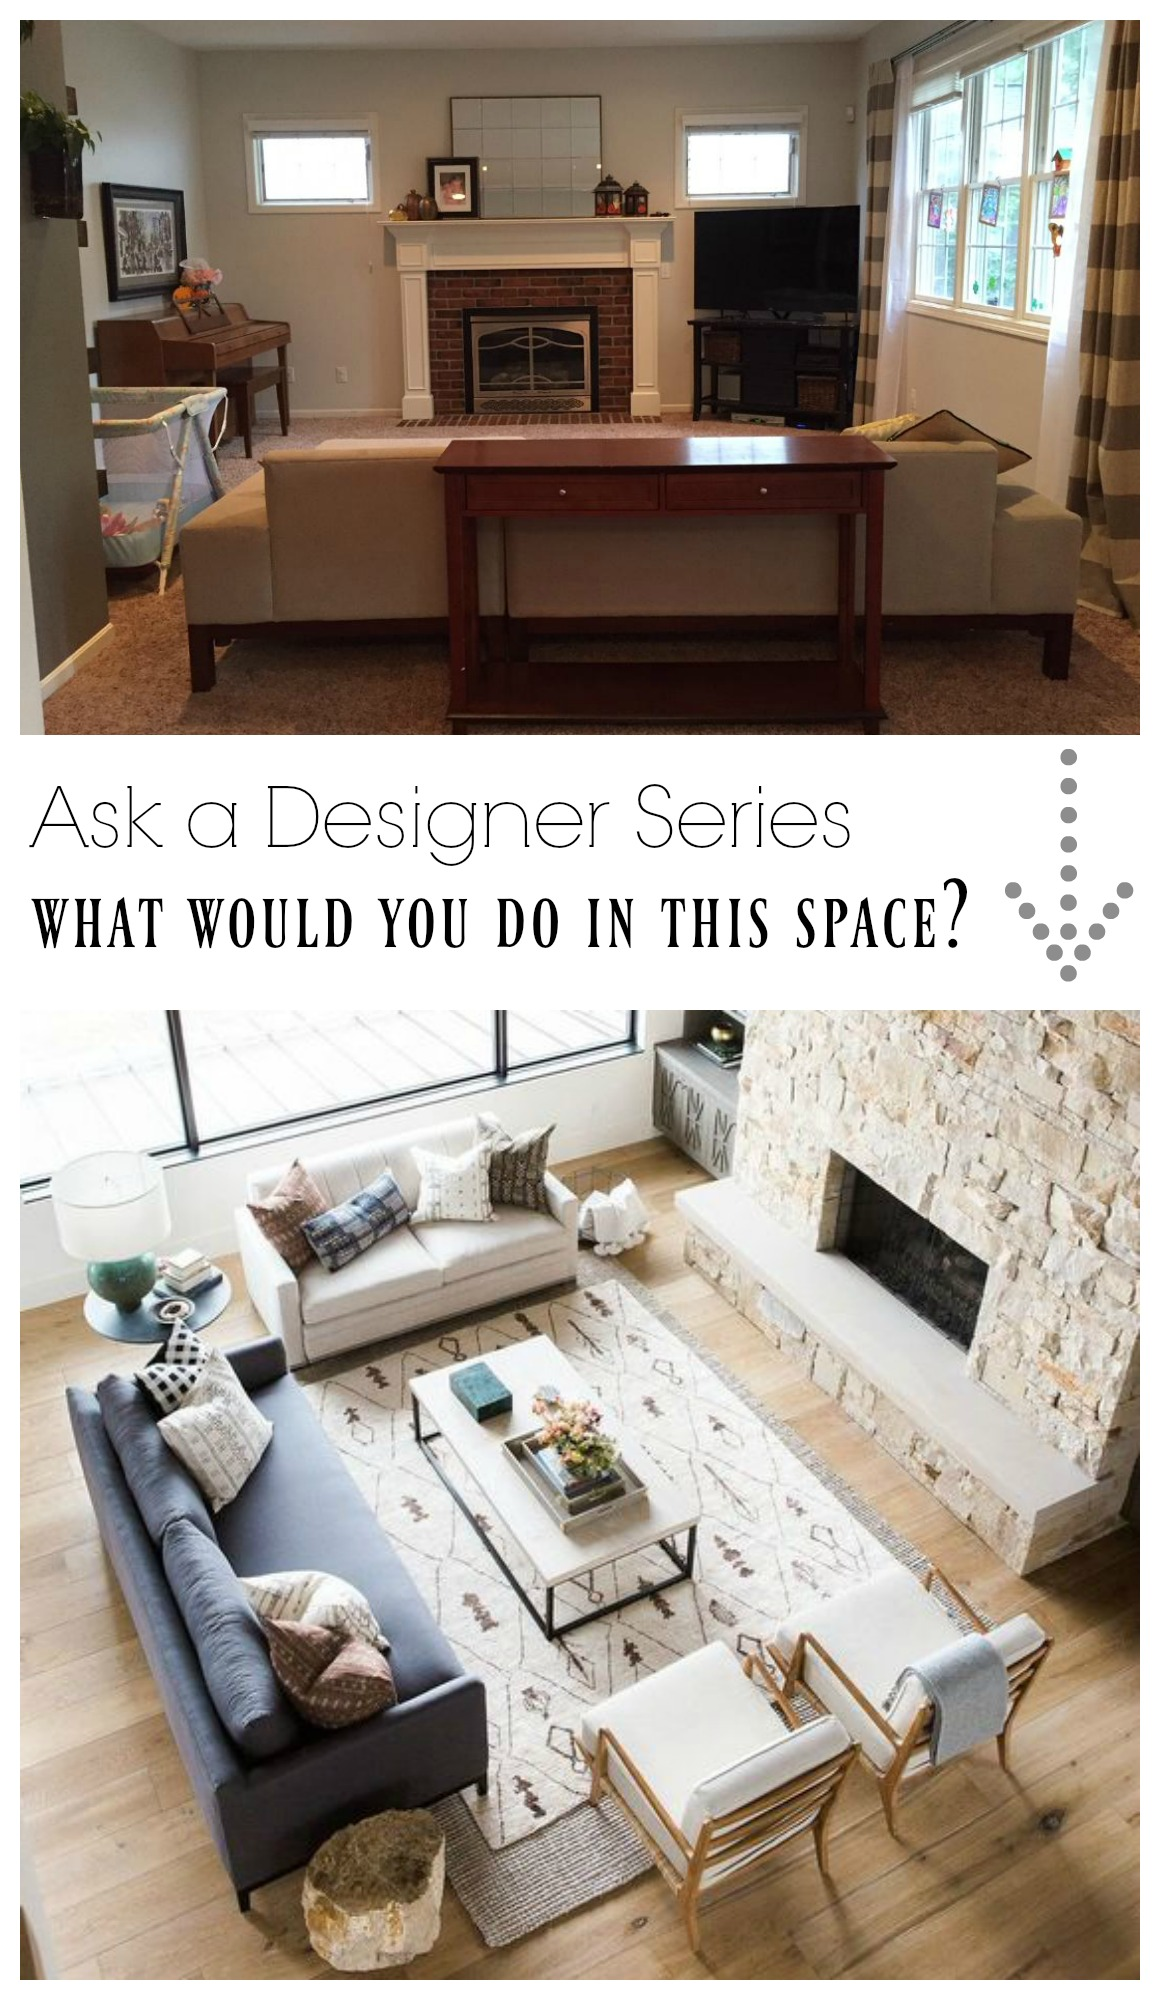 Ask a Designer Series- What would you do in this Family Room?